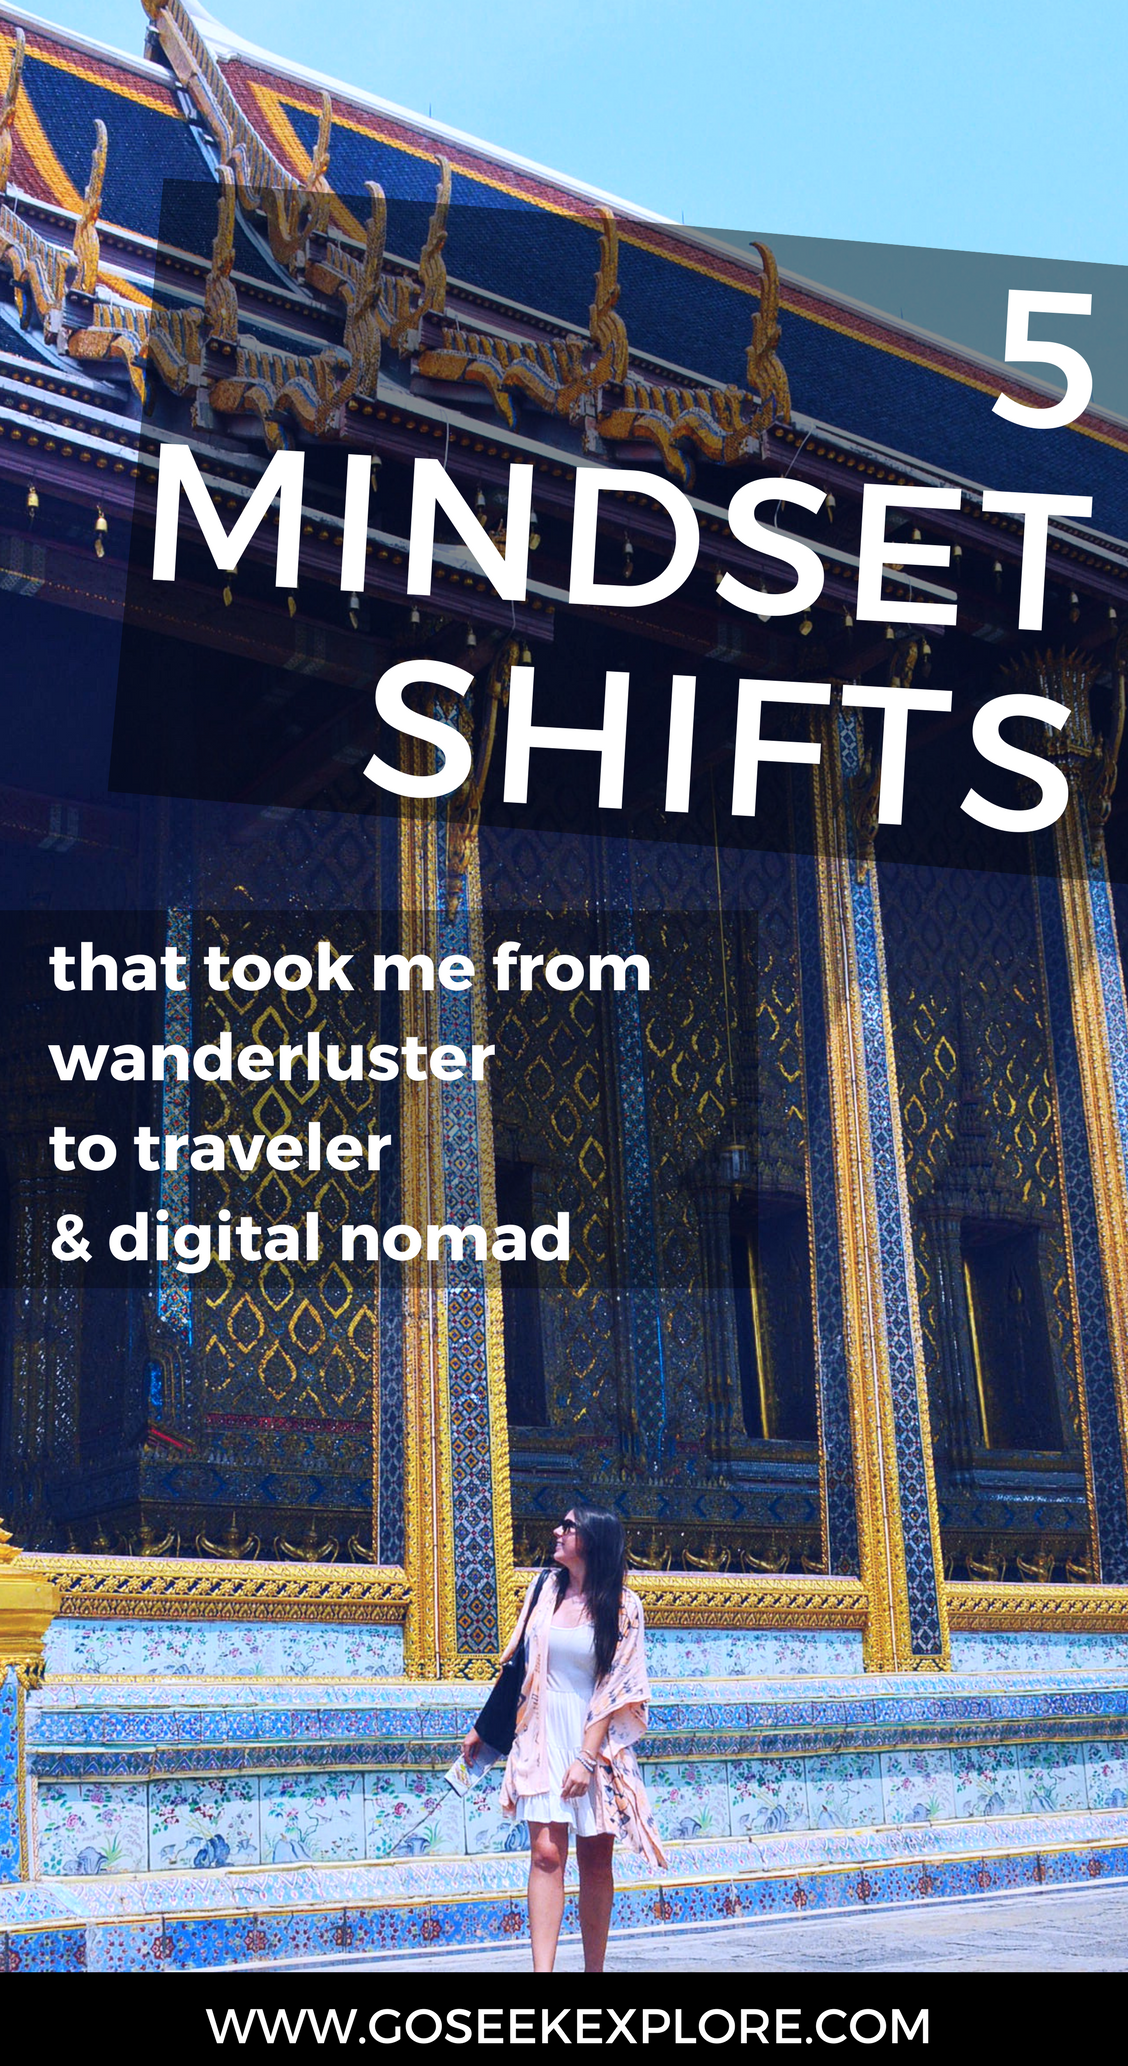 5 Important mindset shifts that took me from dreaming of travel, to working abroad in 22+ countries as a traveler and digital nomad. These are as essential as finding travel tips for cheap flights - because if you can't shift your mindset, you're not going to go anywhere! - Ally Archer - goseekexplore.com